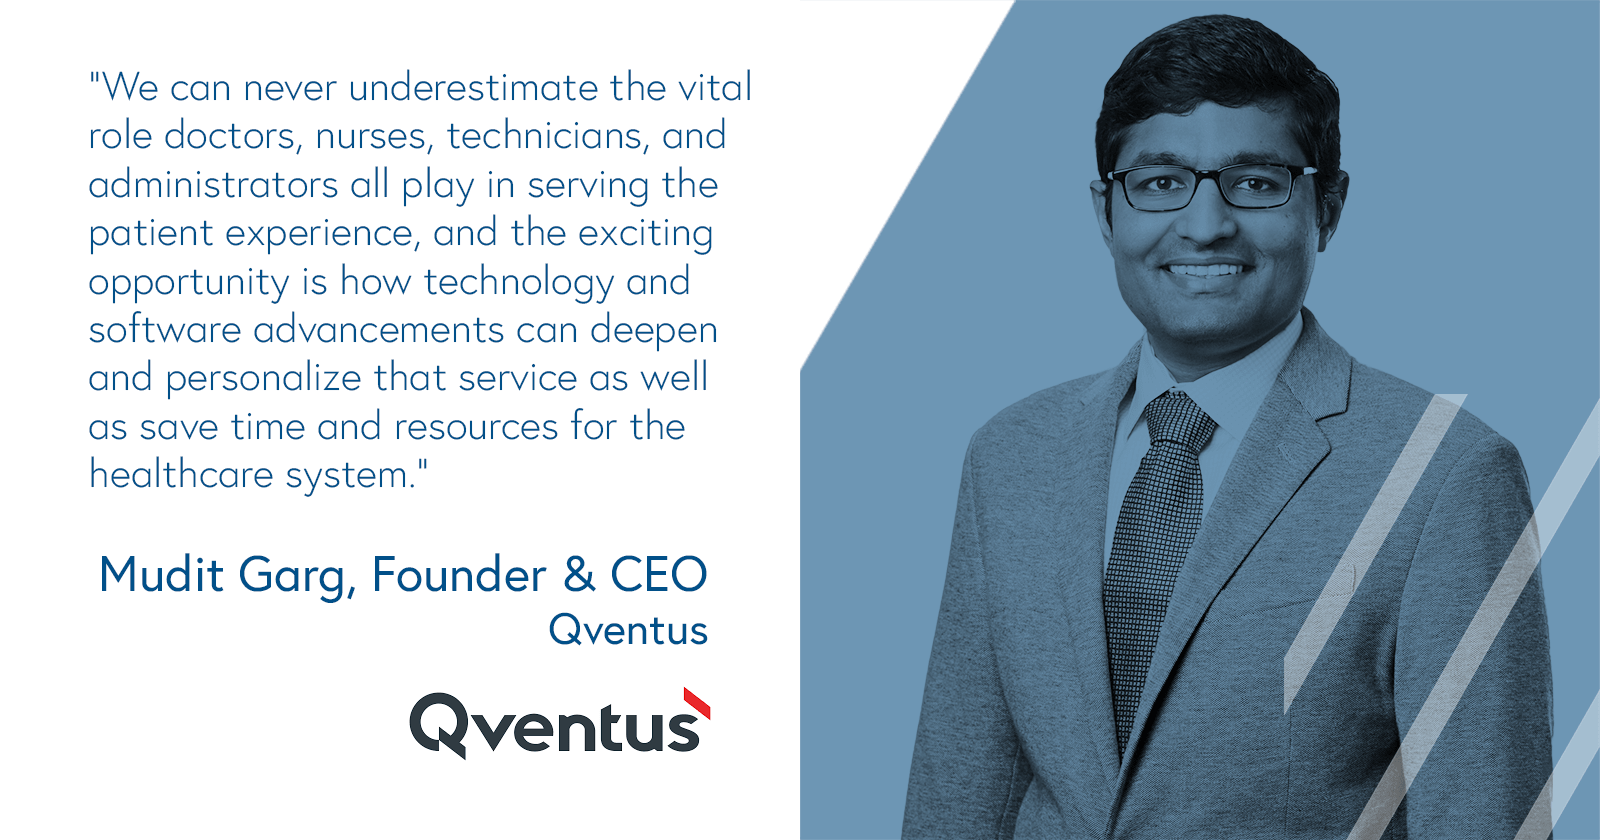 Mudit Garb, Founder and CEO, Qventus